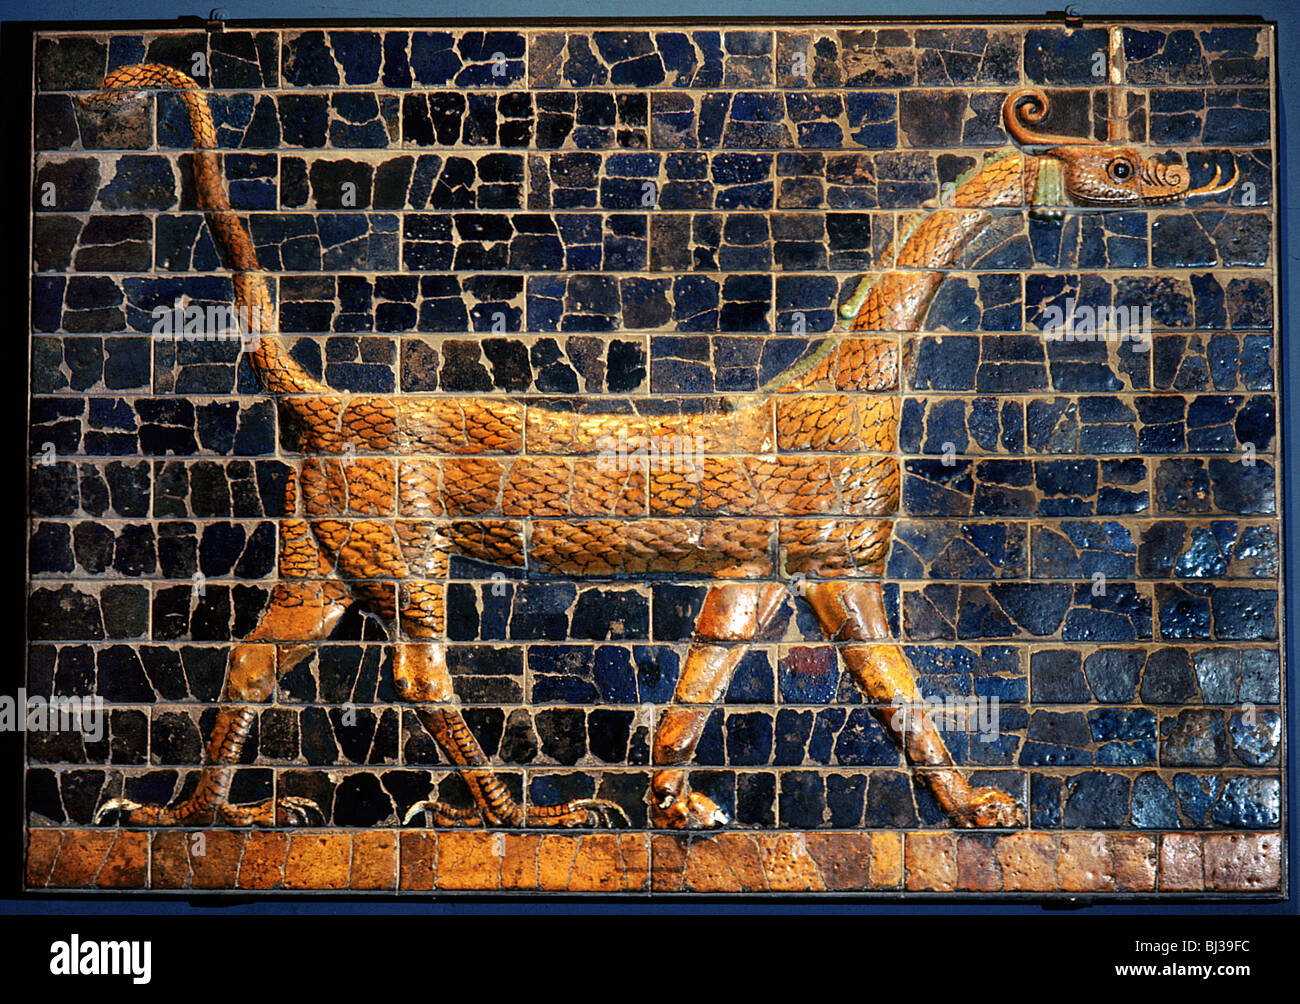 A polychrome glazed brick from the Ishtar at Babylon, c570 BC. Artist: Werner Forman - Stock Image